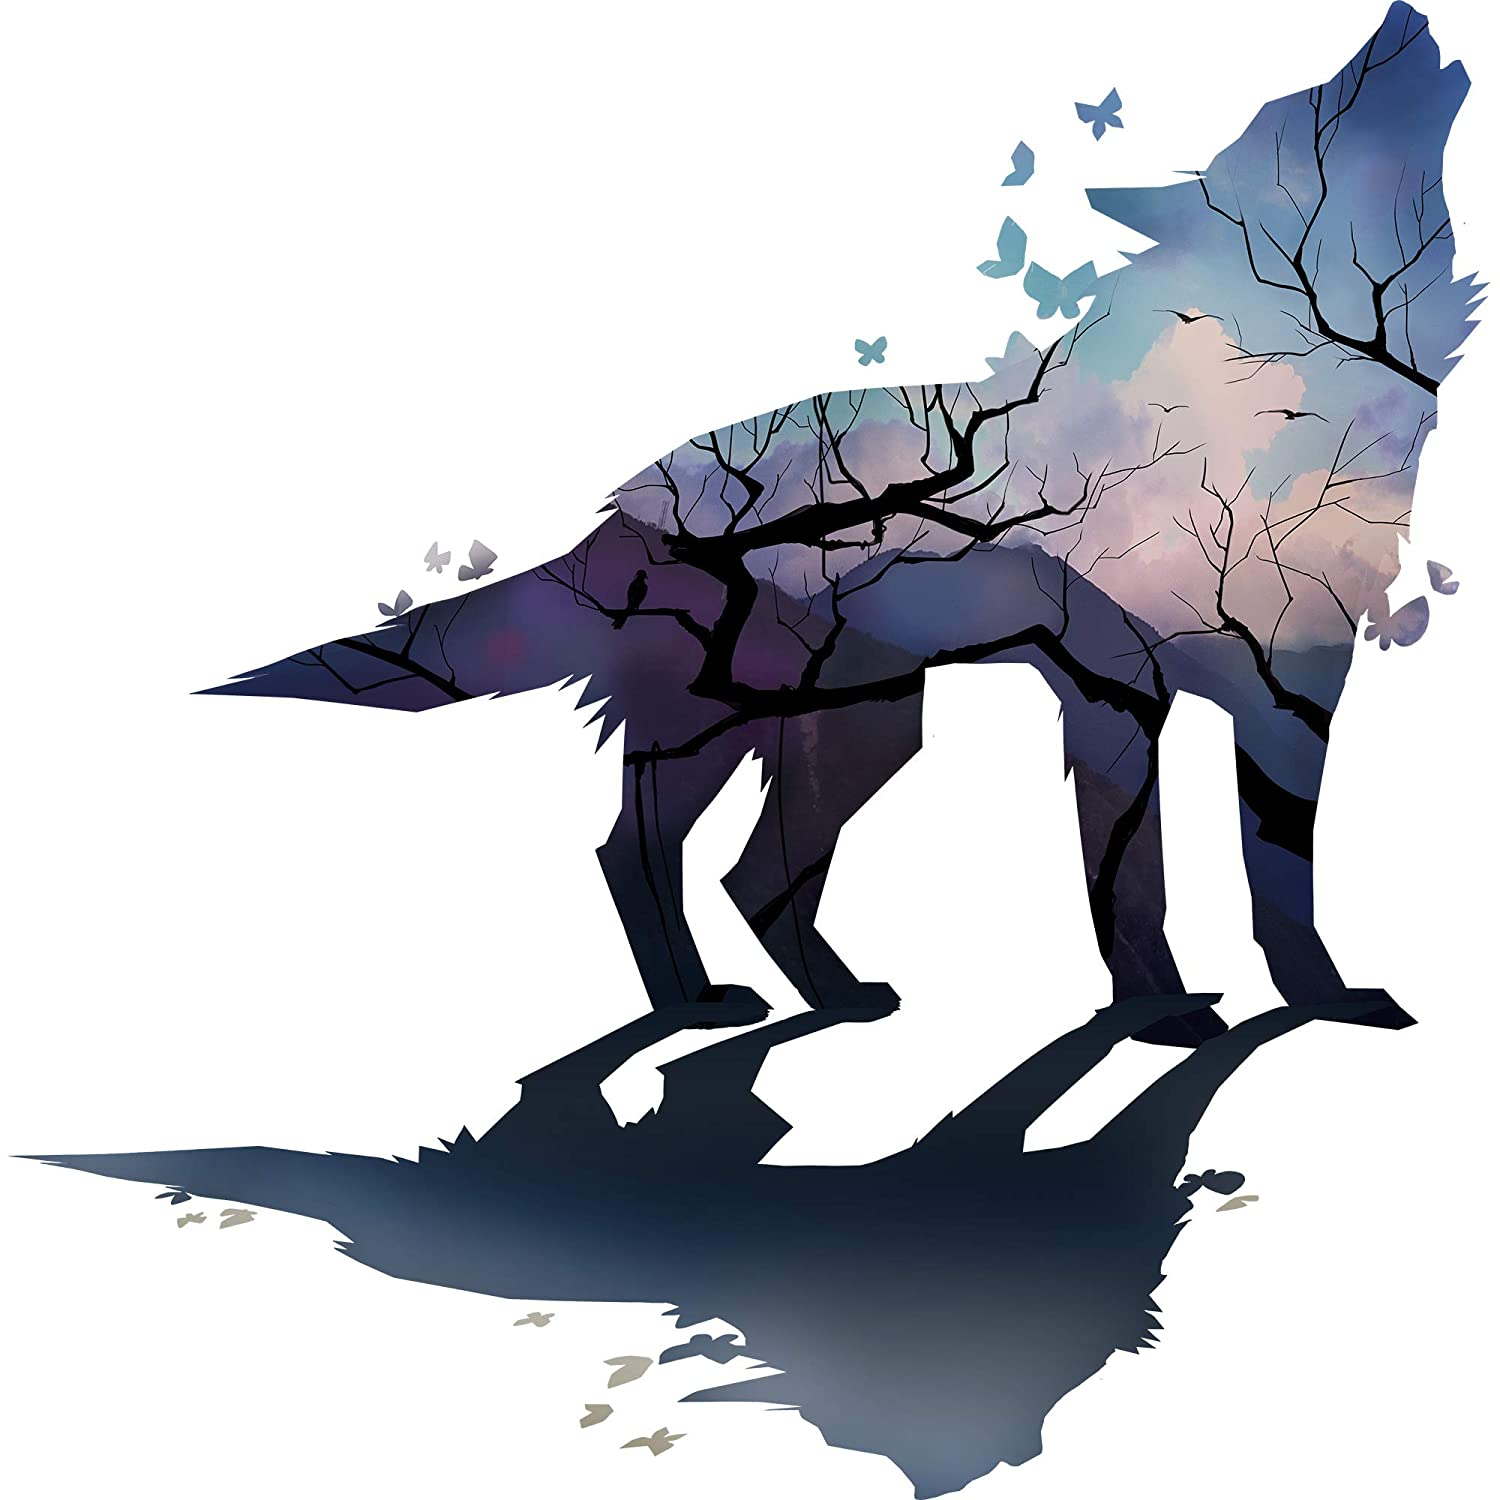 RW-9042 Creative Wolf Wall Decal Forest Sky Night Wolf Wall Stickers DIY Removable Waterproof Butterflies Wolf Shadow Wall Art Mural Decor for Kids Boys Bedroom Living Room Nursery Home Decoration